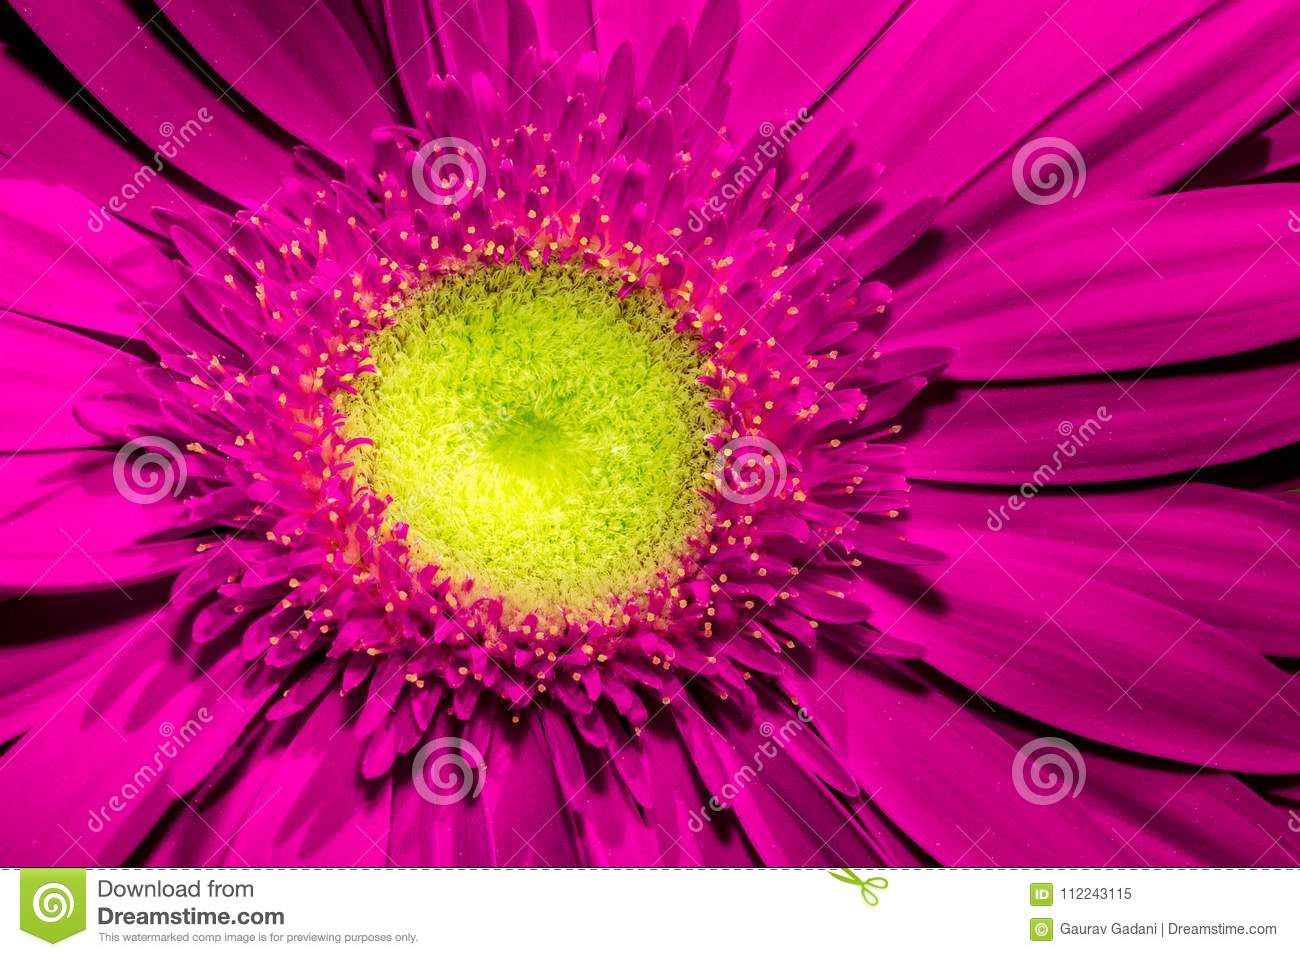 Close up of Violet gerbera flower with yellow centre and beautiful soft petals